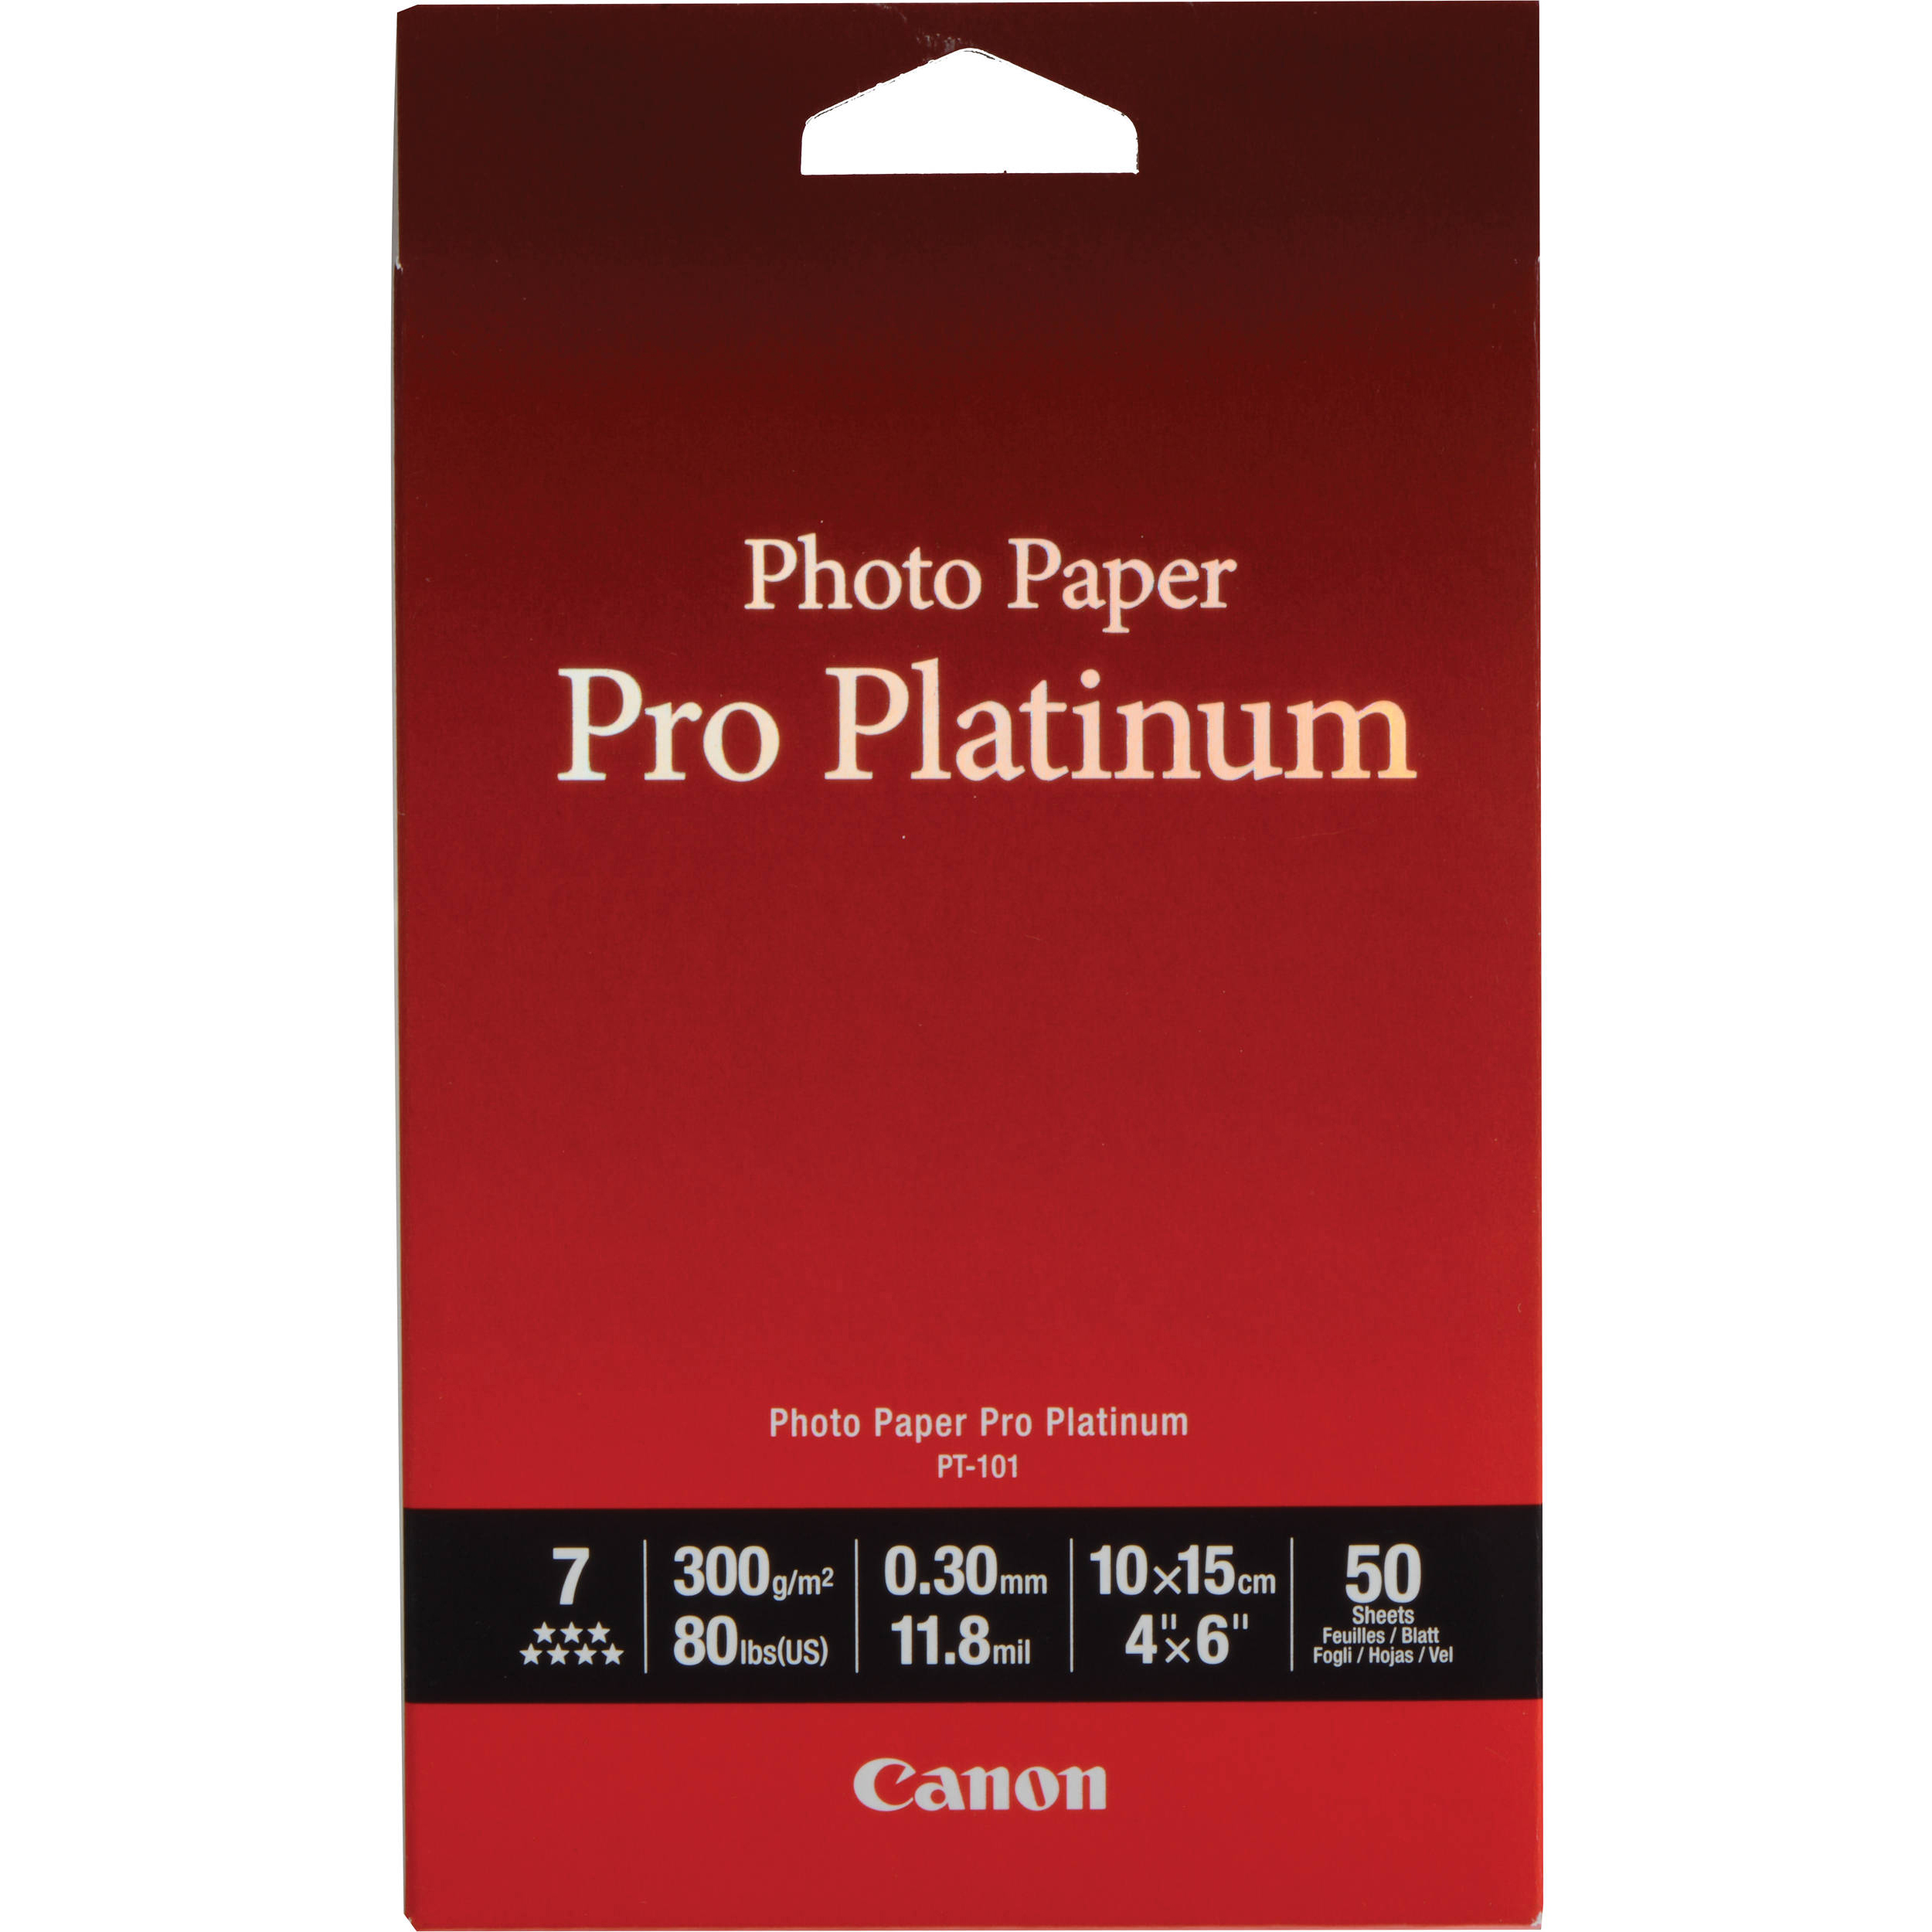 Original Canon PT-101 300gsm 4 x 6in Pro Platinum Photo Paper - 50 sheets (2768B014)